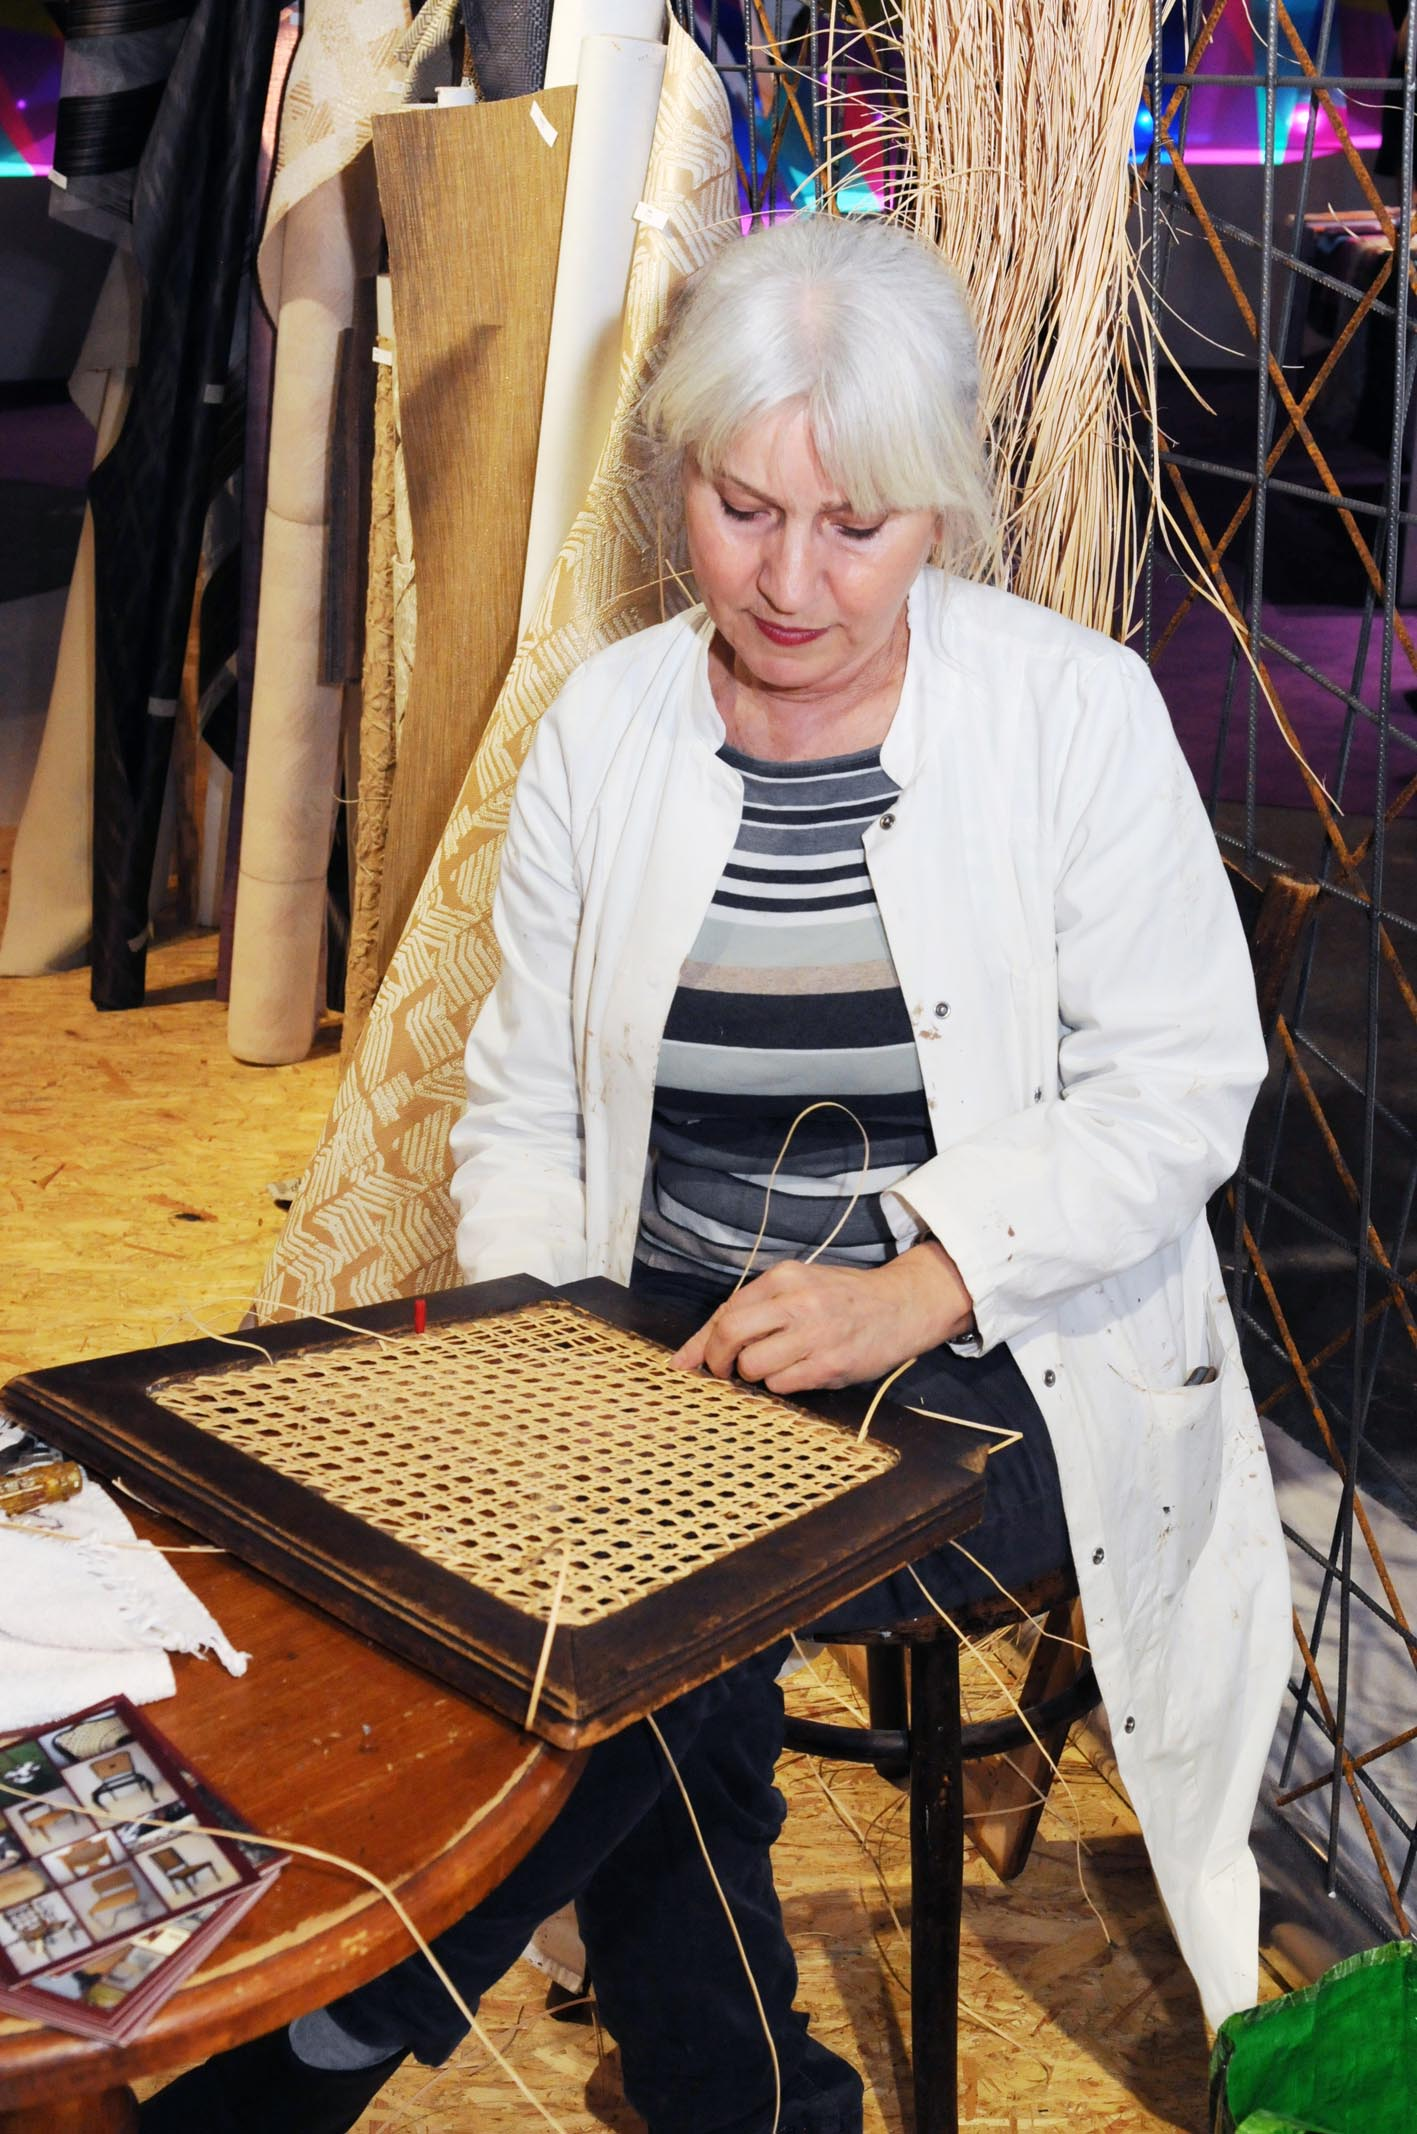 working craftsmen and women will be present at the fair.